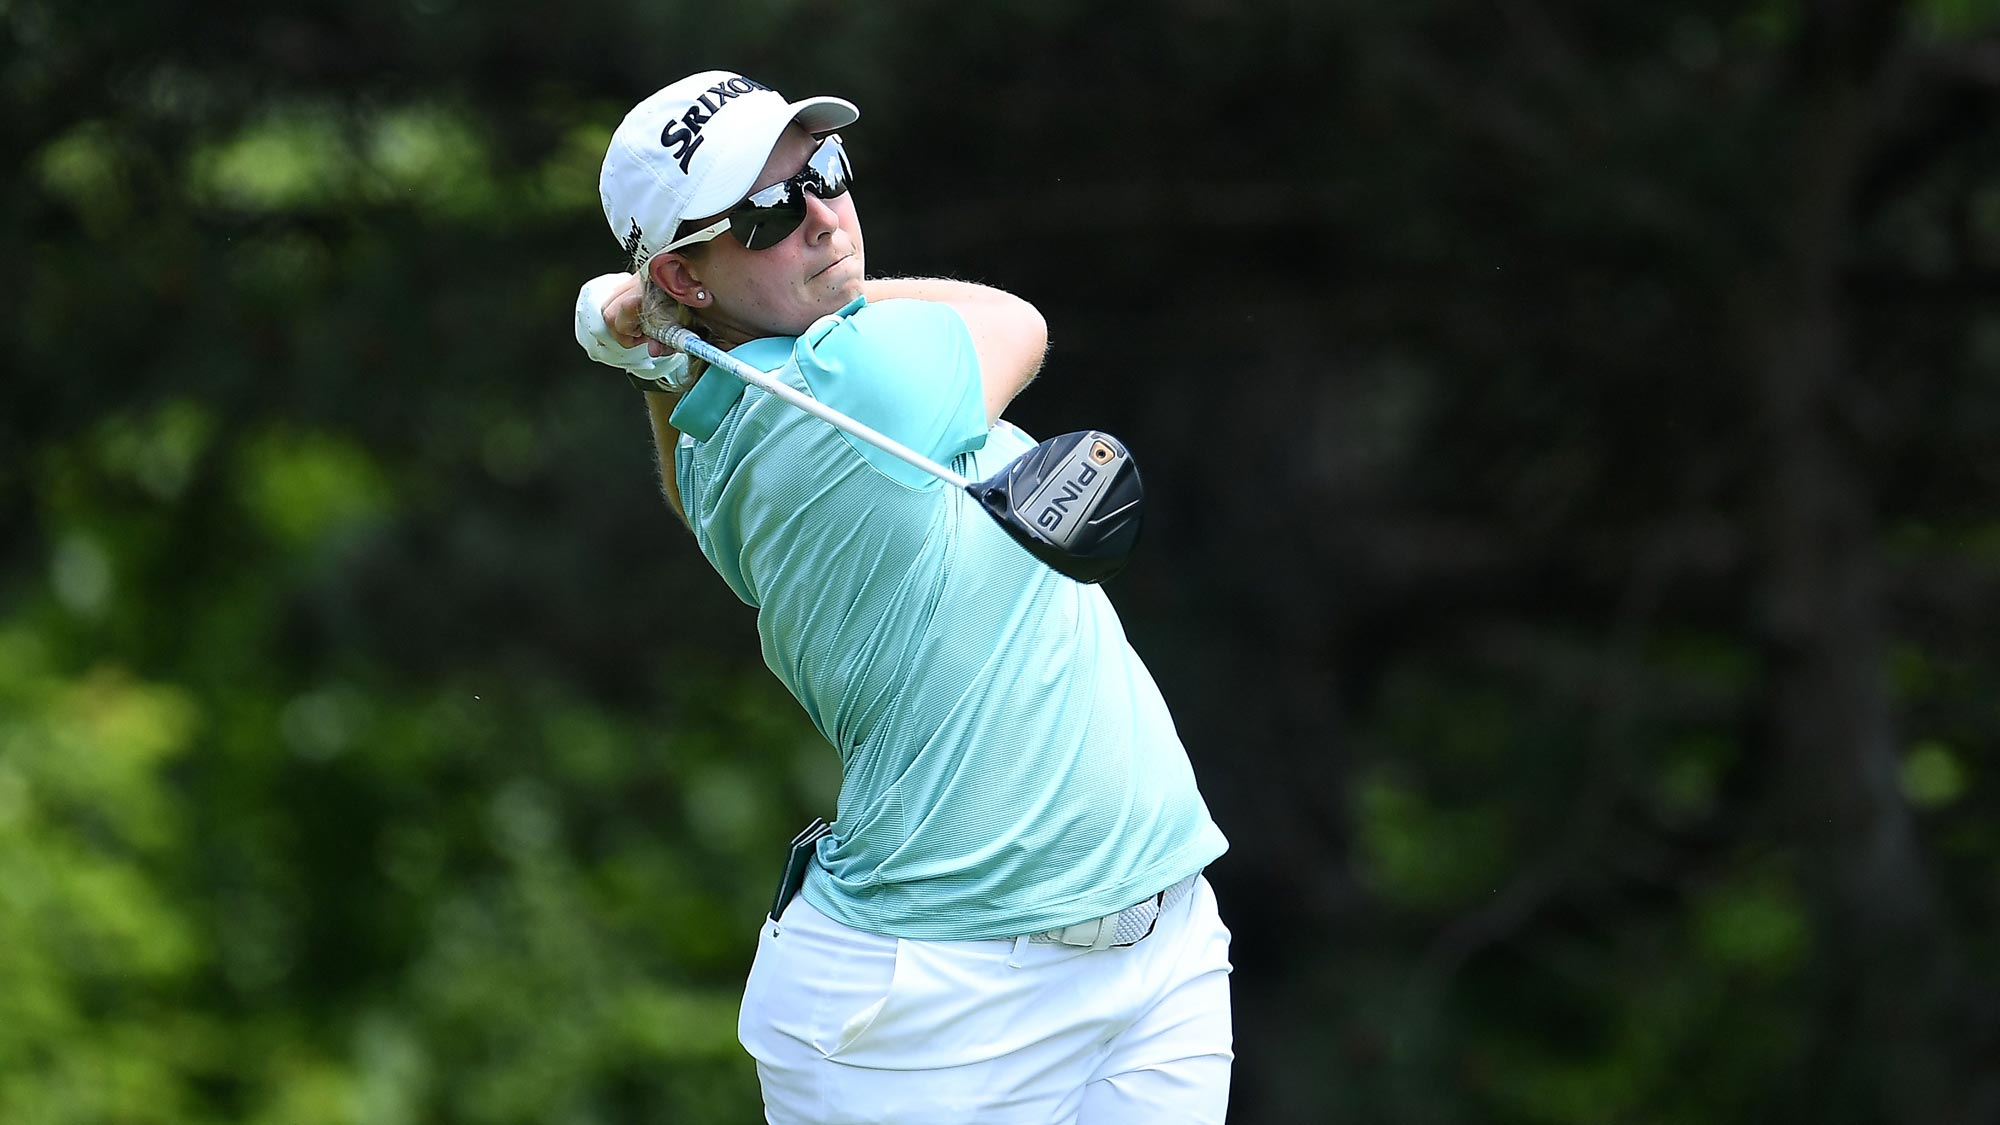 Ashleigh Buhai of South Africa hits her tee shot on the second hole during the third round of the KPMG Women's PGA Championship